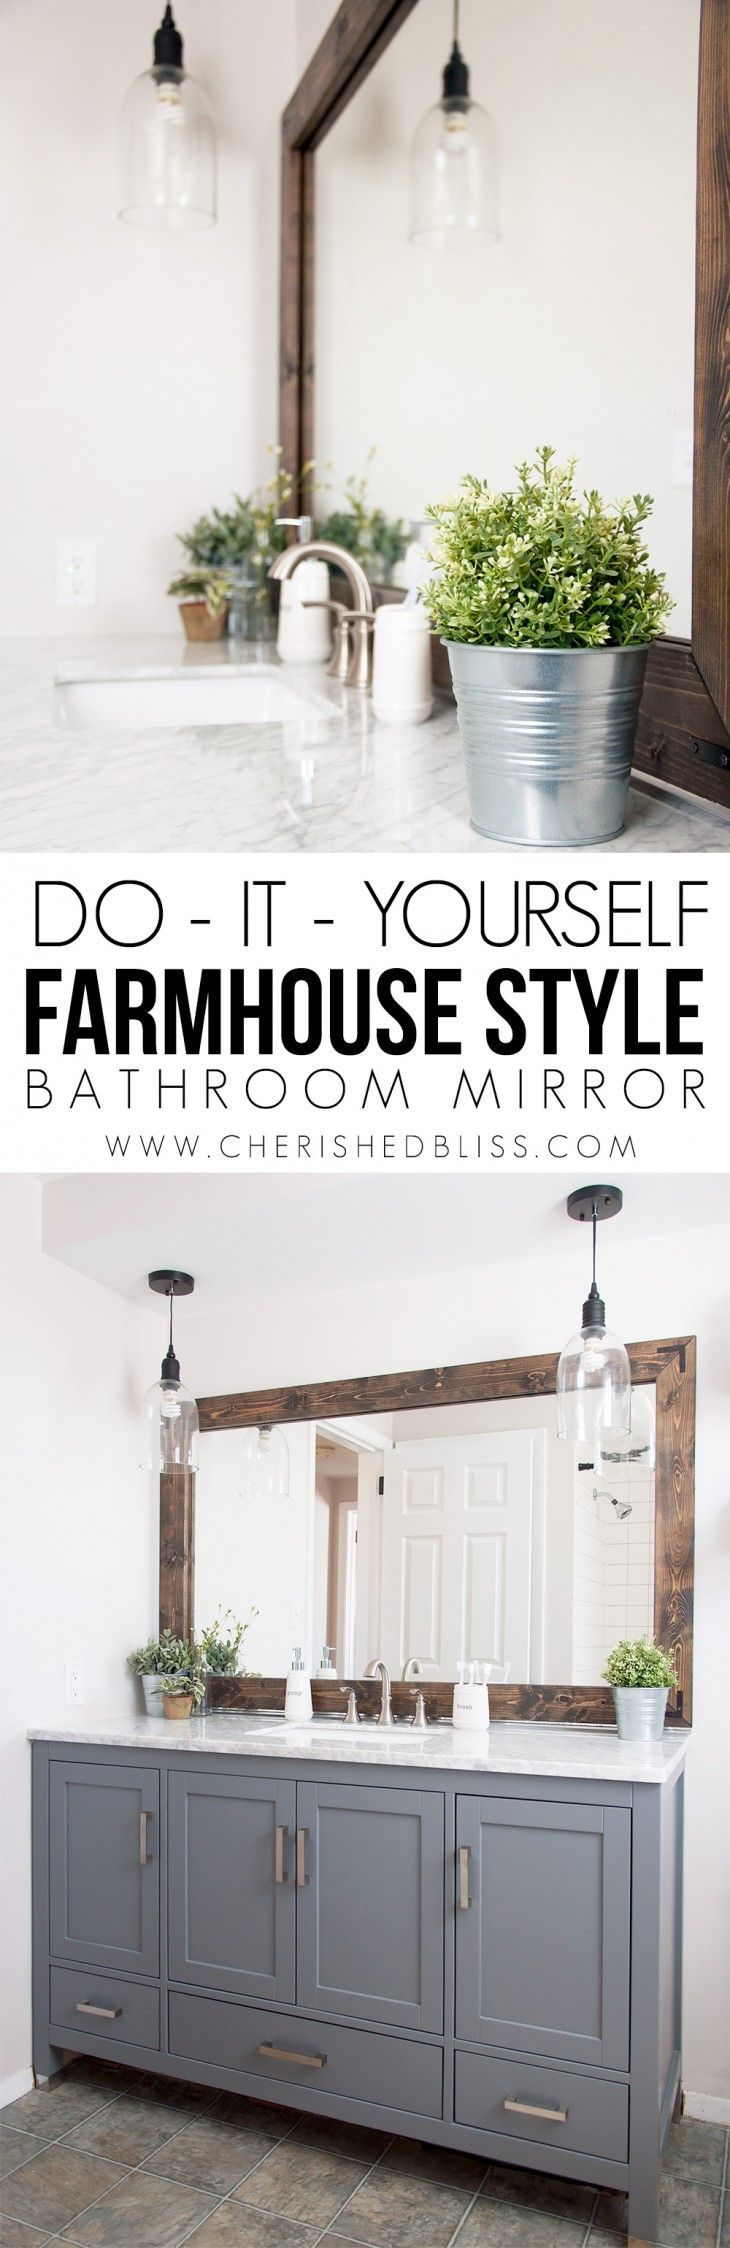 best 25+ farmhouse bathrooms ideas on pinterest | guest bath